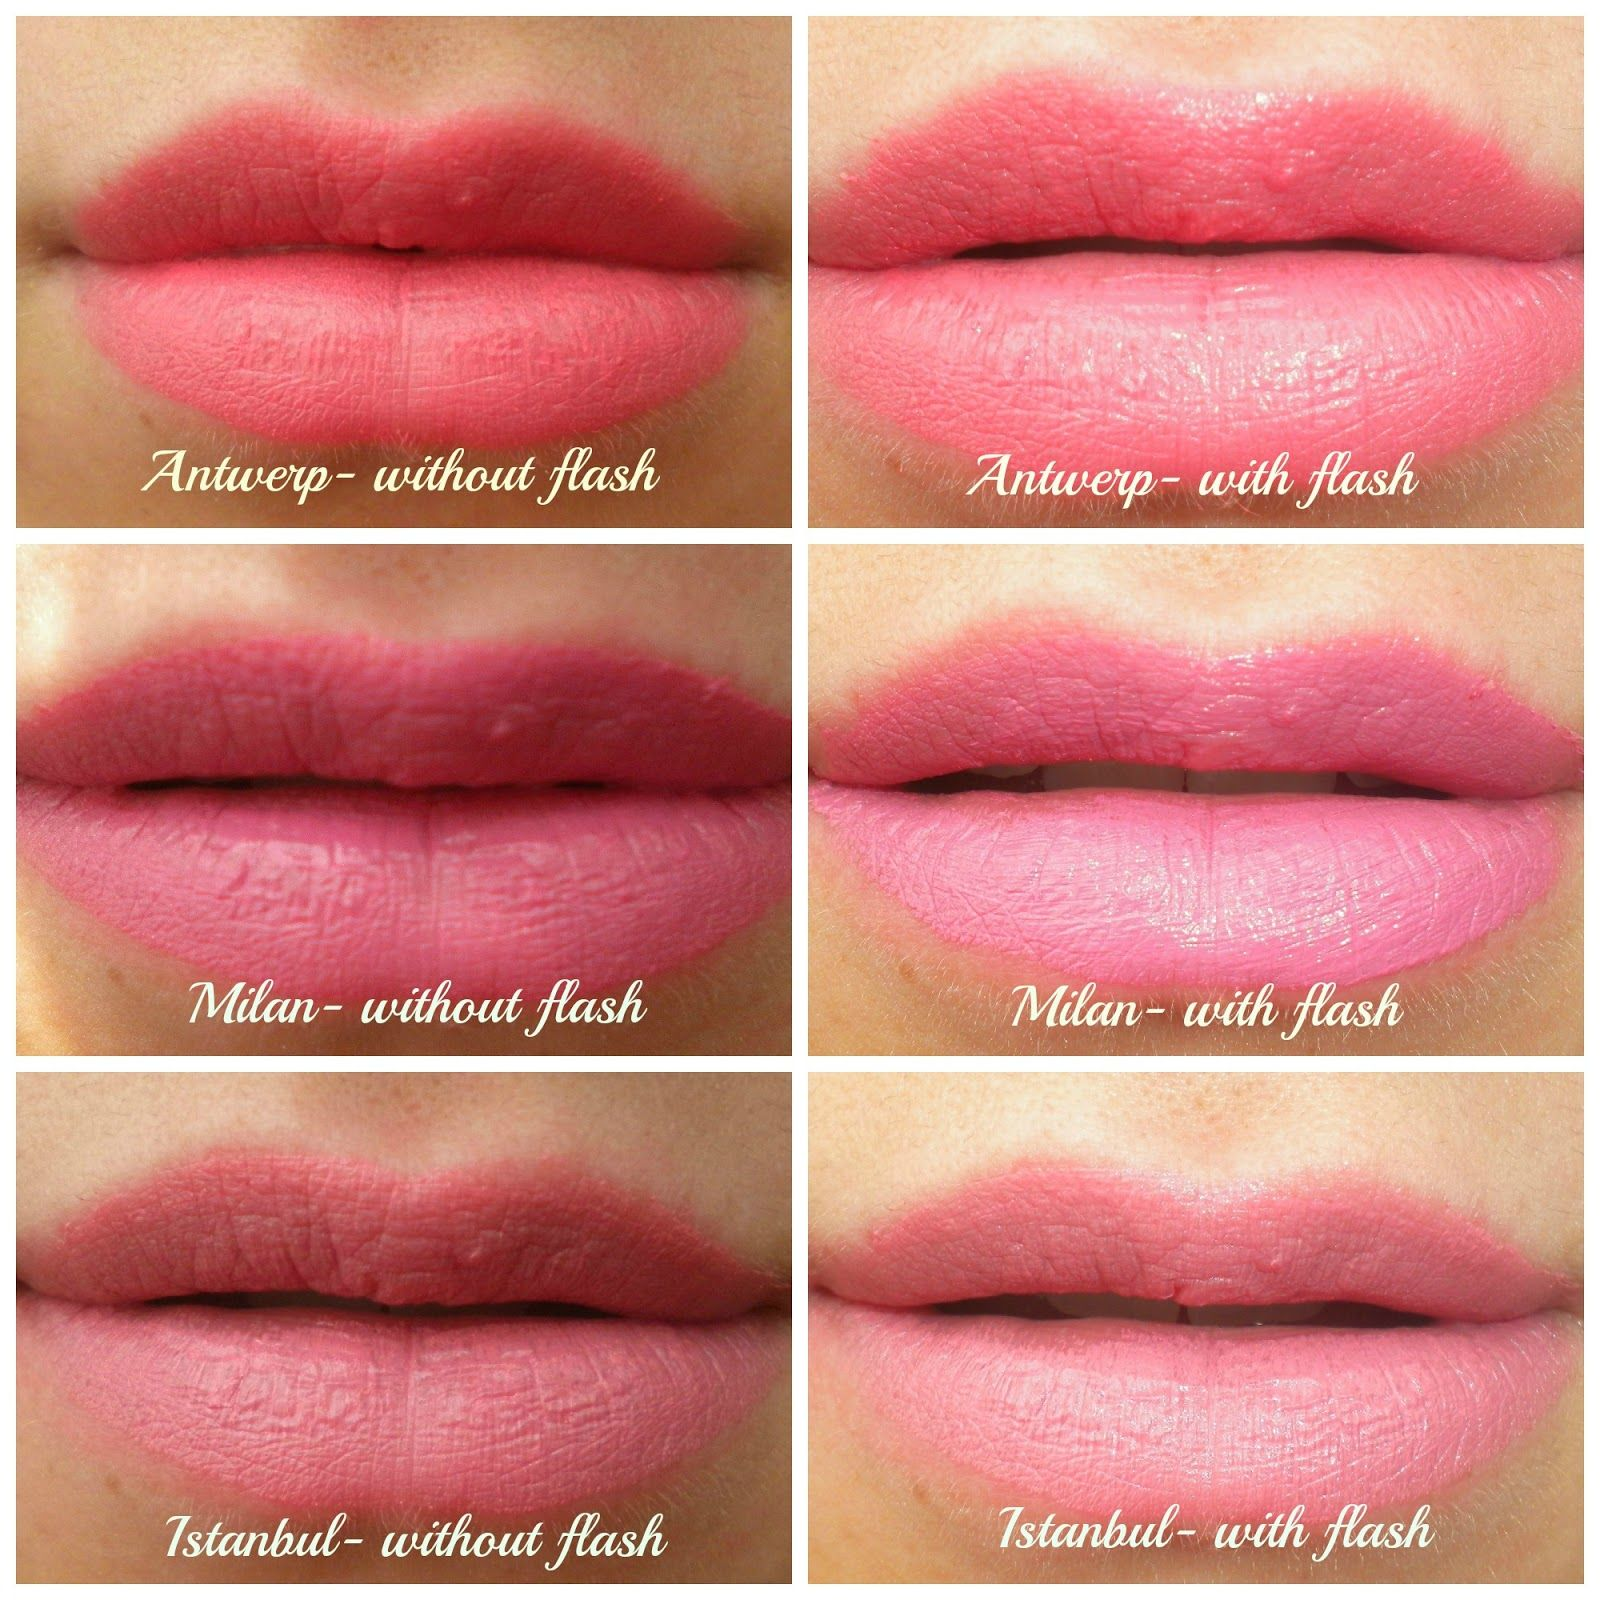 The Seaside Girl- Beauty and Lifestyle Blog: NYX soft matte lip cream review (with swatches)